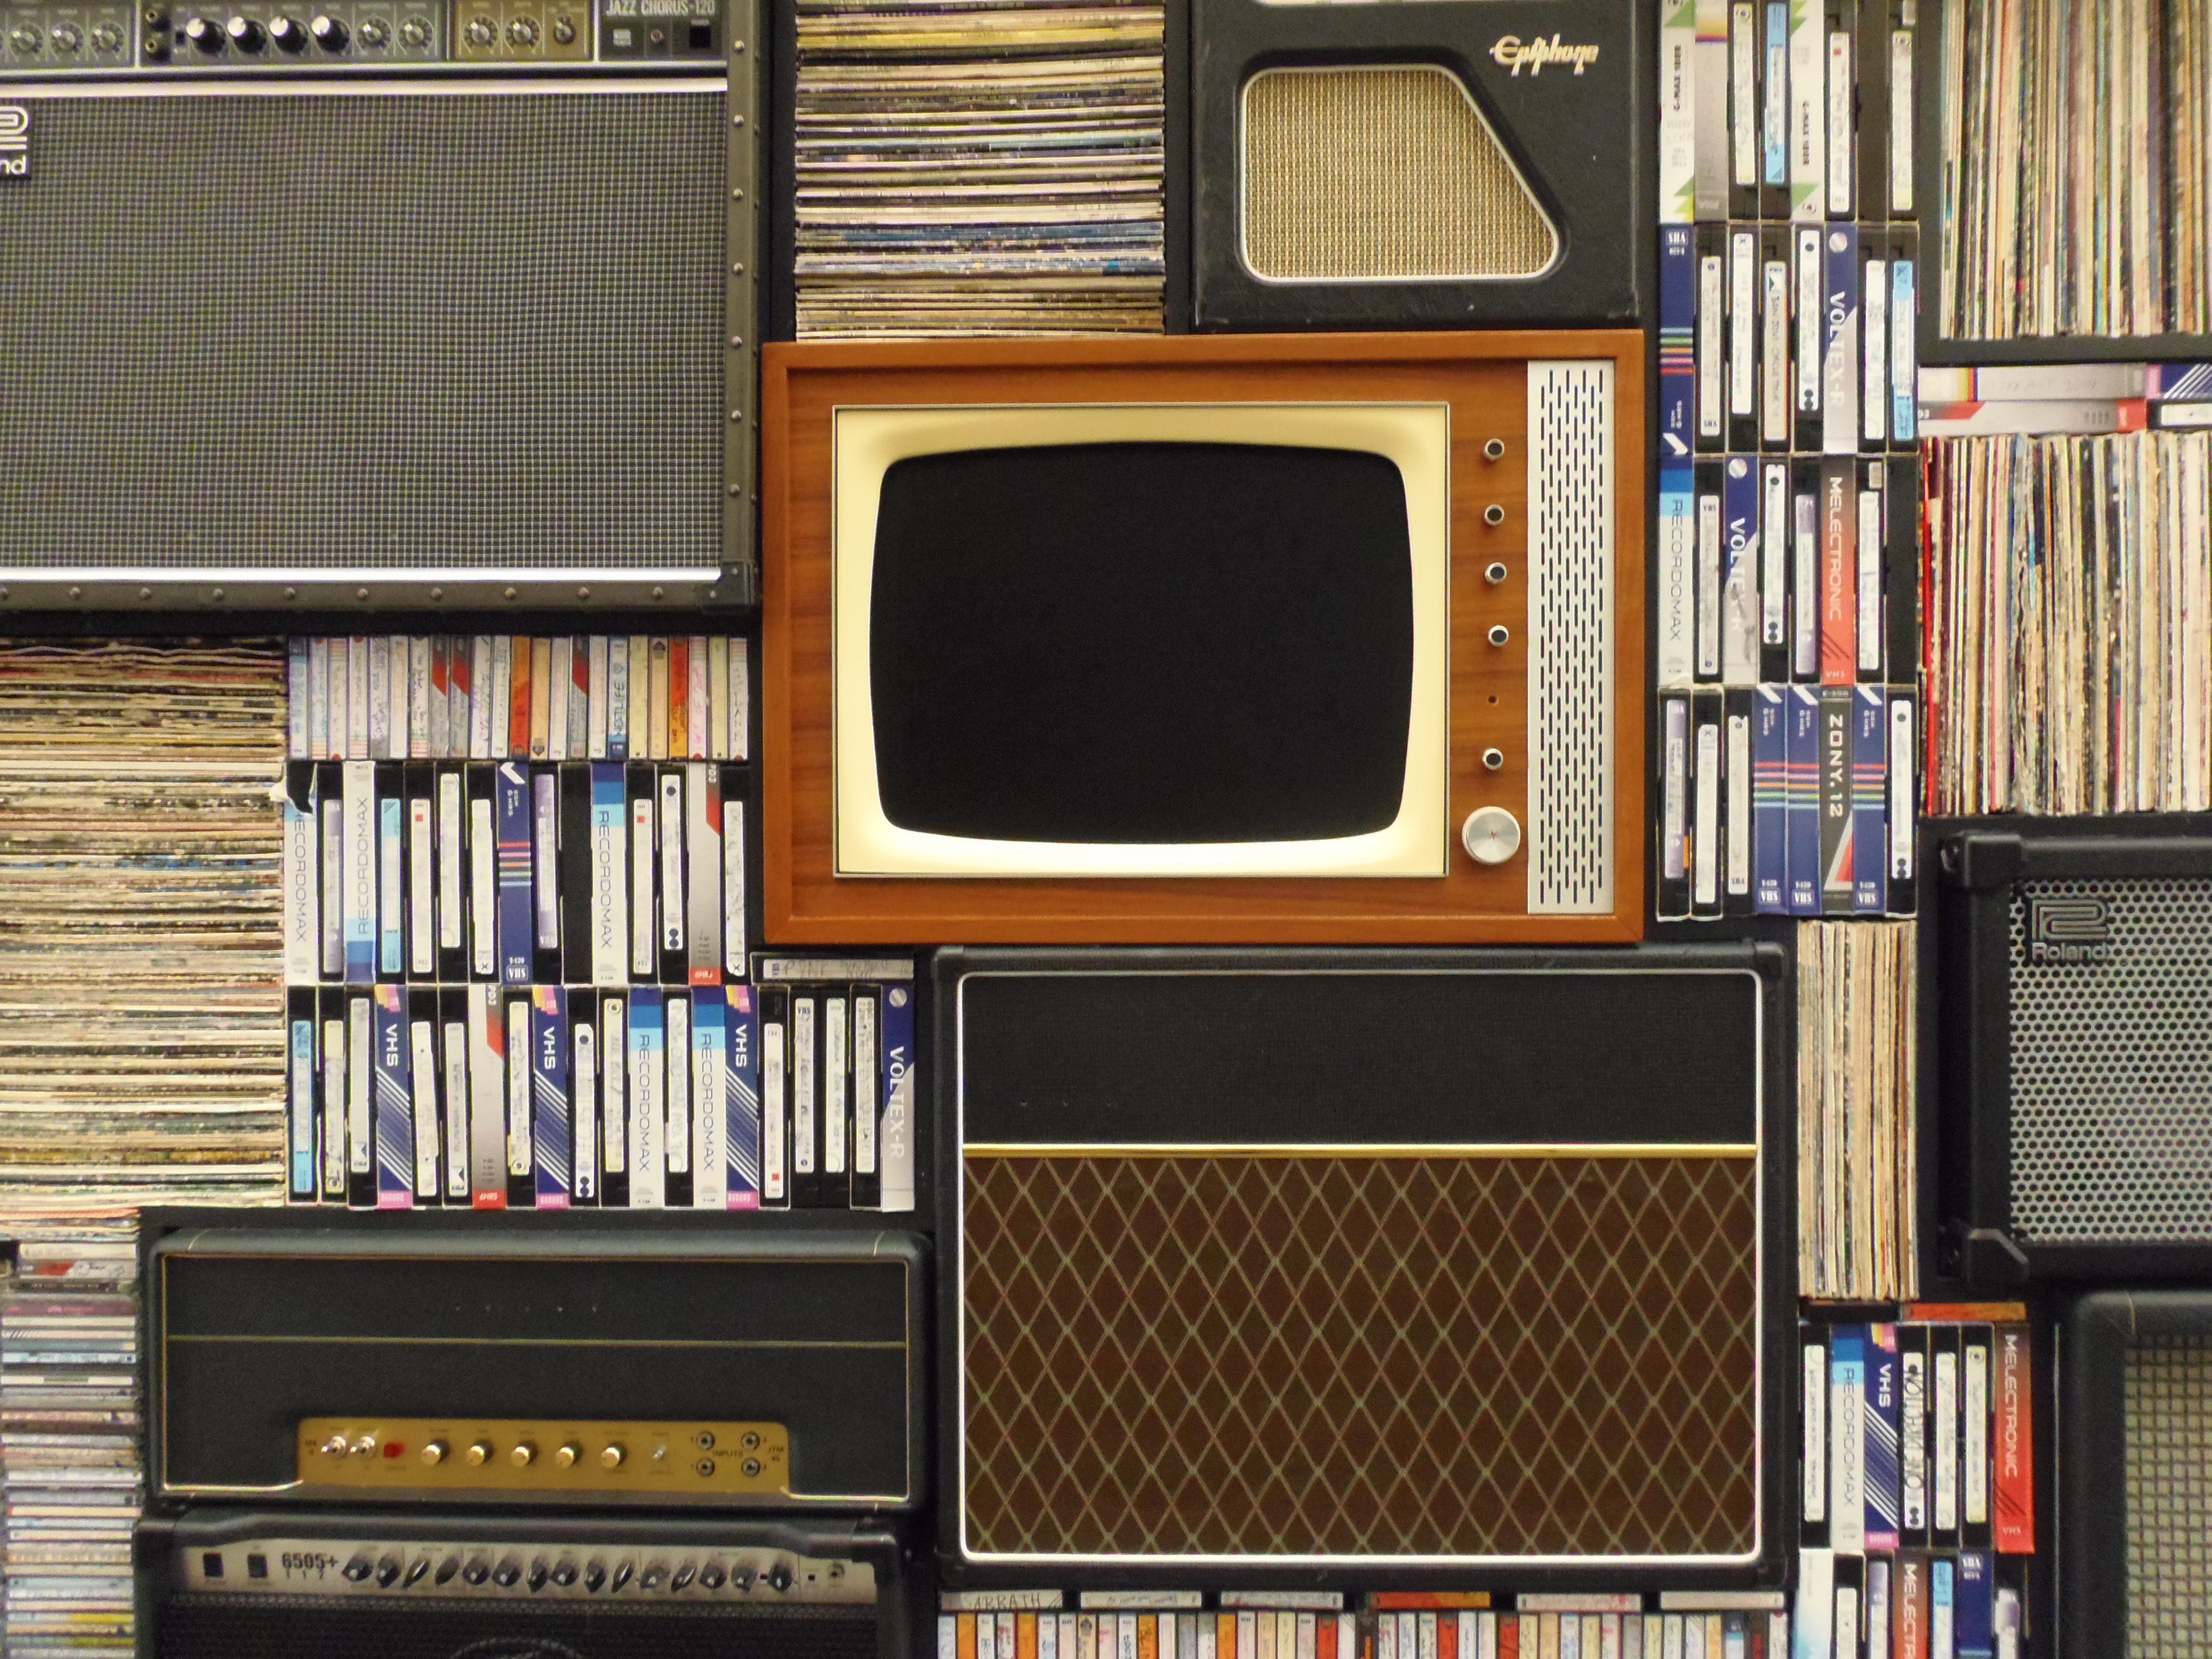 Television television stories